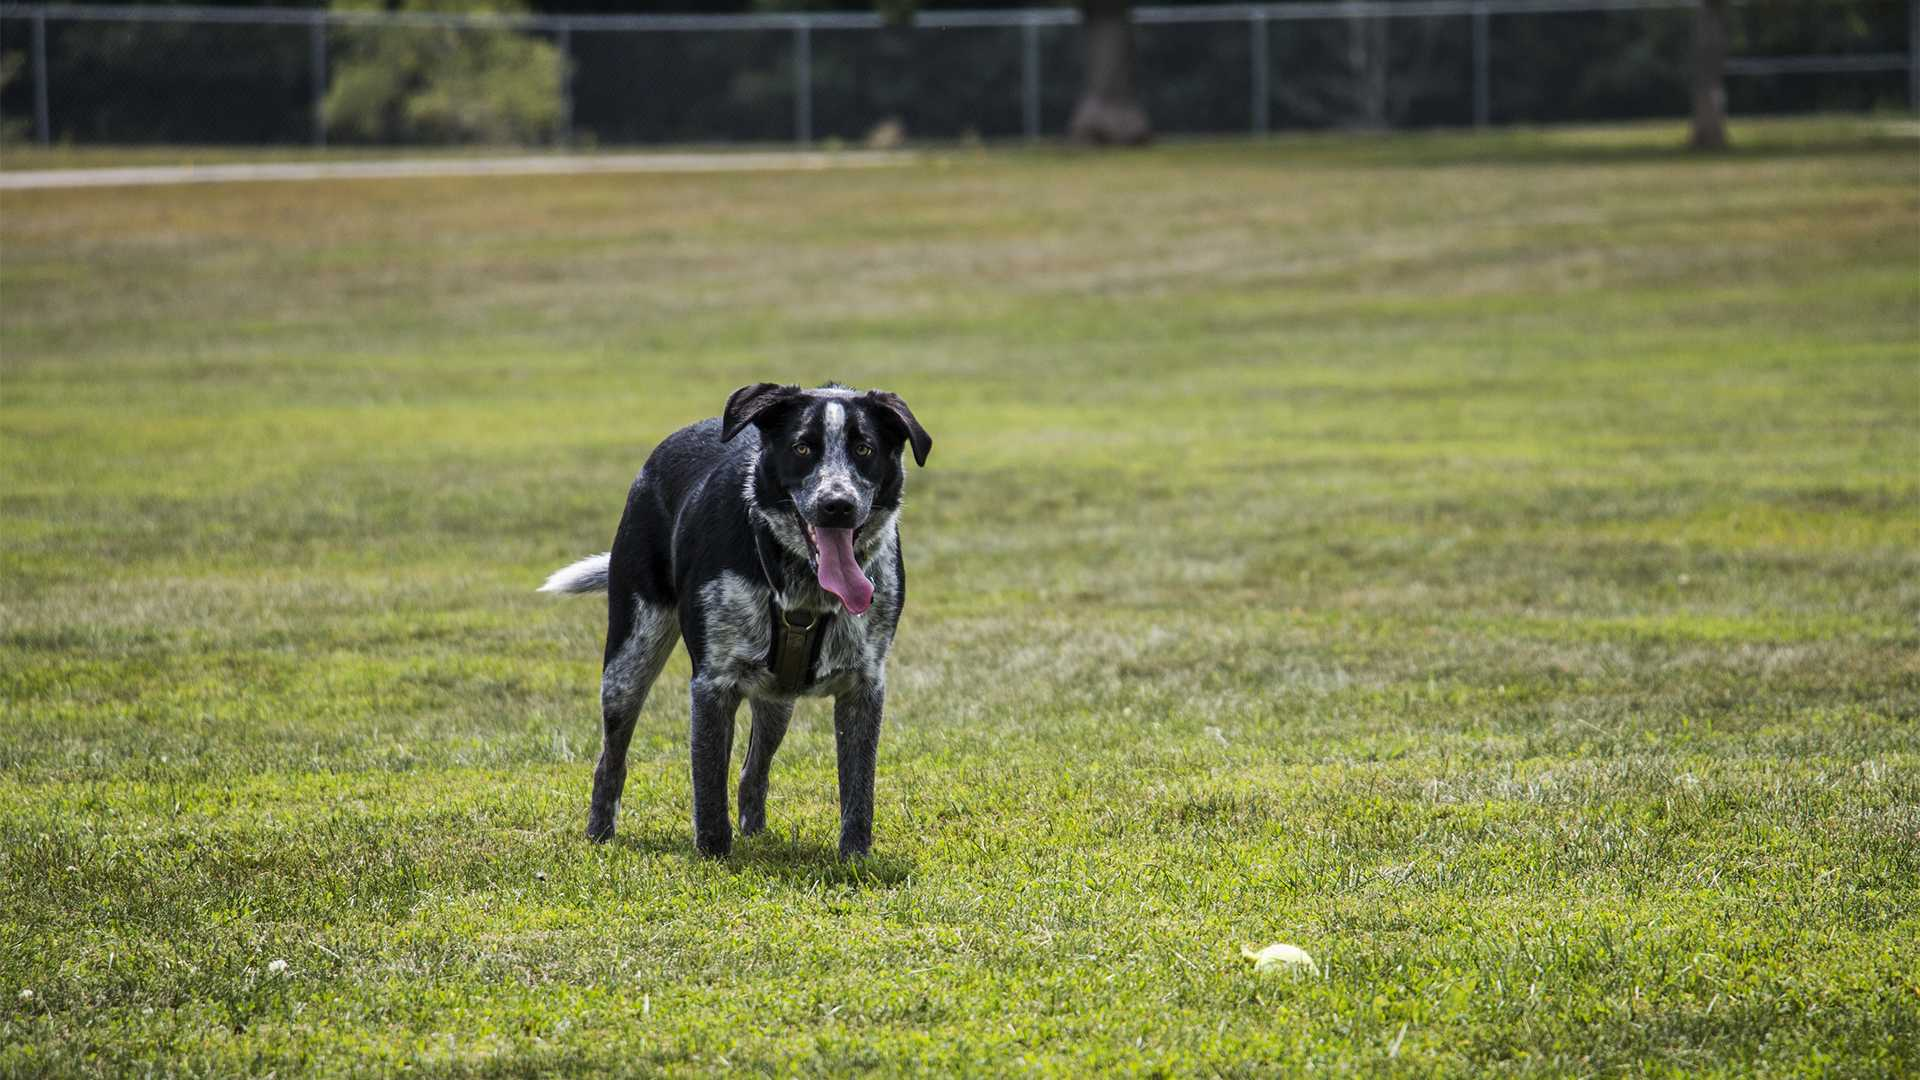 A dog plays with a tennis ball at Thronberry Off-leash Dog Park on Aug. 1, 2018. (Katina Zentz/The Daily Iowan)